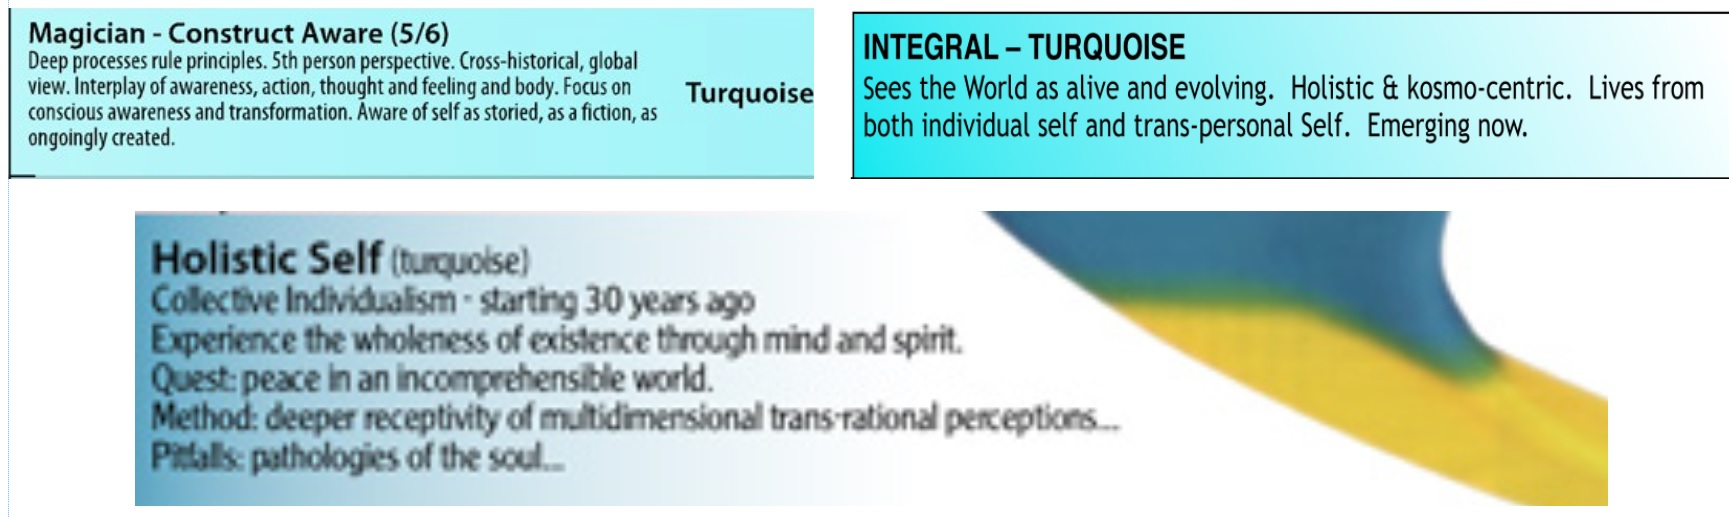 integral turquoise